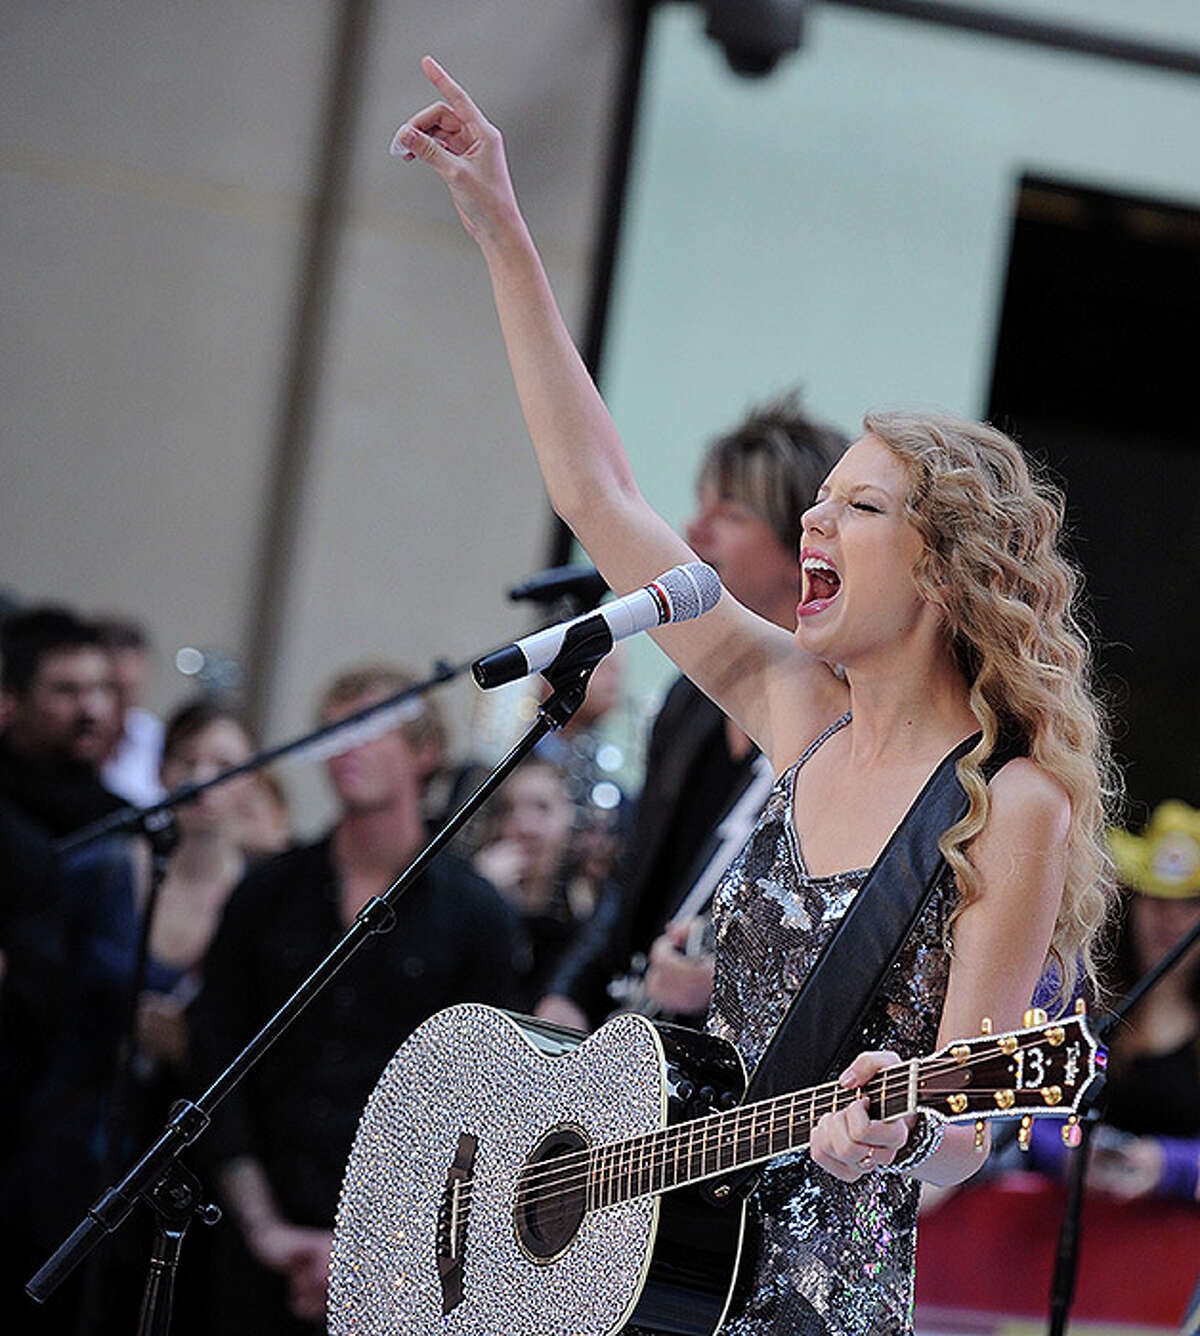 """NEW YORK - OCTOBER 26: Musician Taylor Swift performs on NBC's """"Today Show"""" at Rockefeller Center on October 26, 2010 in New York City. (Photo by Bryan Bedder/Getty Images) *** Local Caption *** Taylor Swift"""